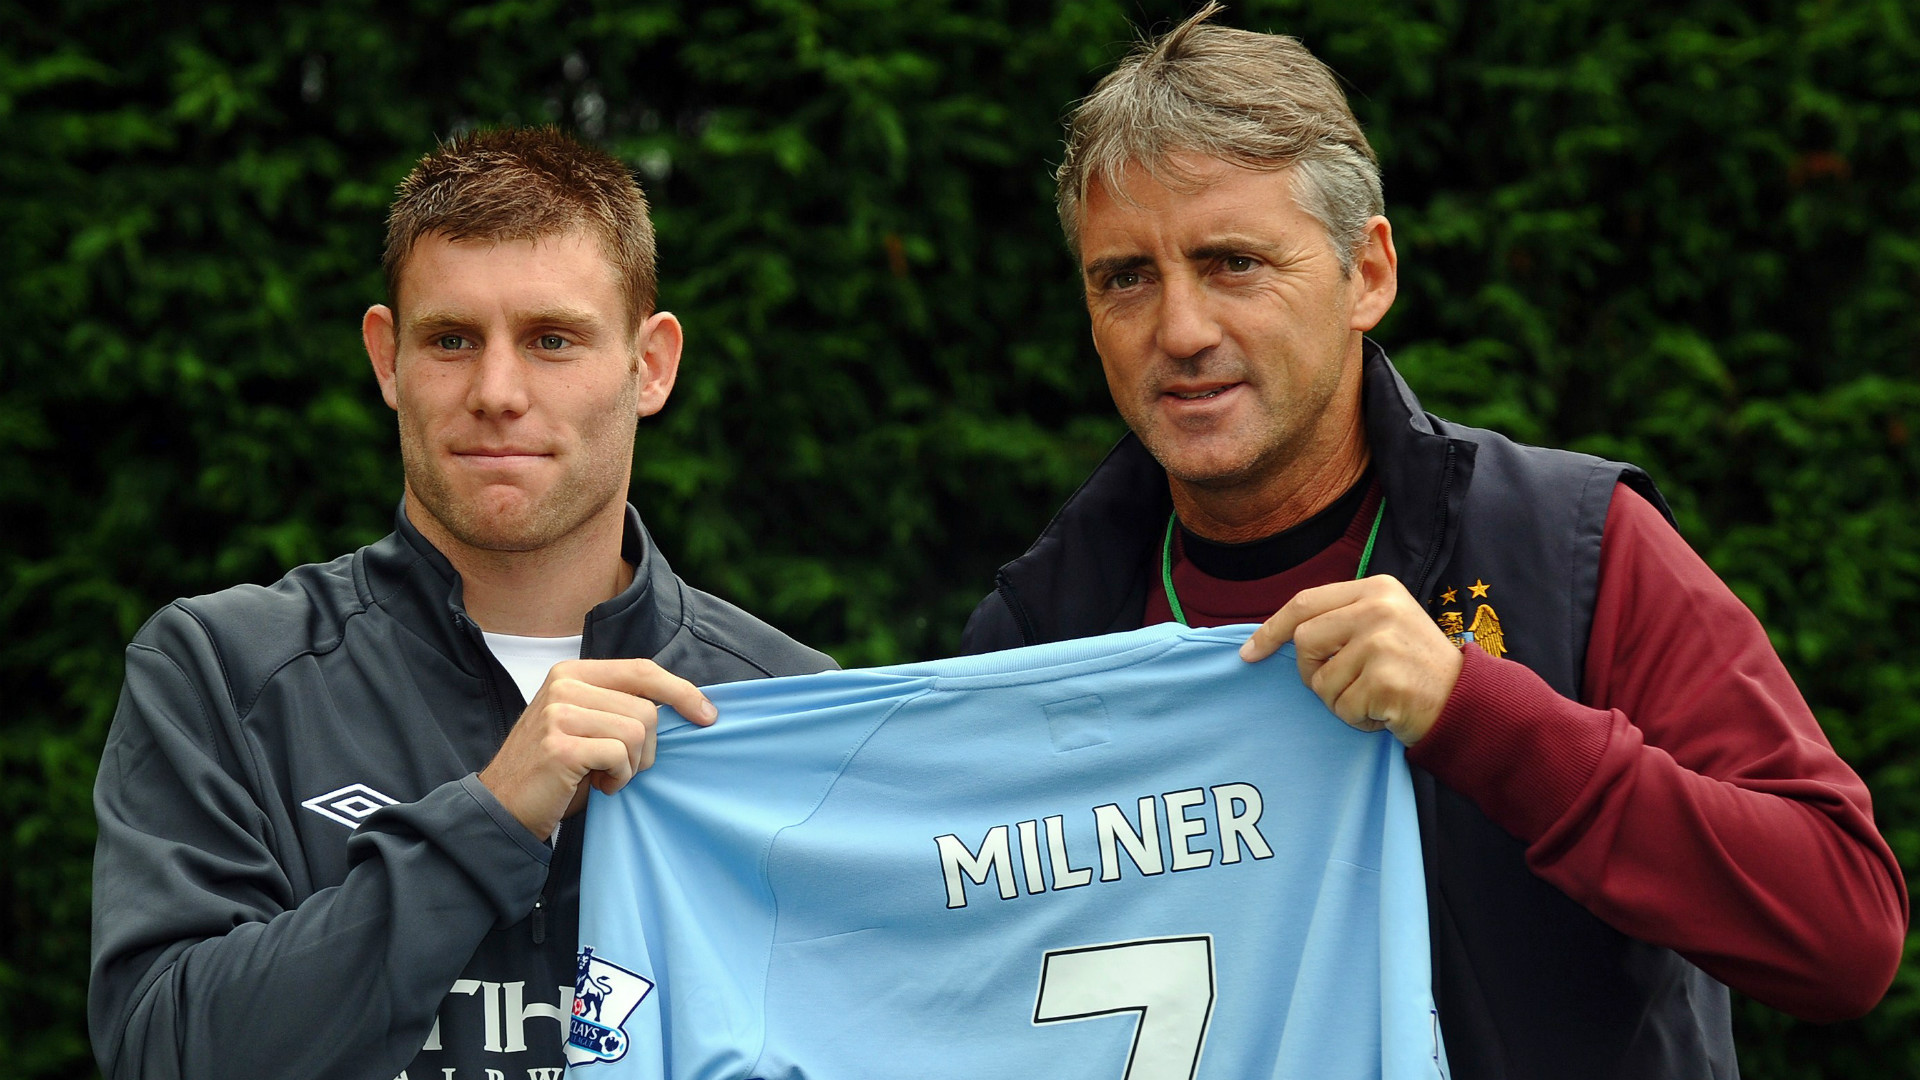 Five years ago - Milner arrived at Mancini's City for £26m from Aston Villa.